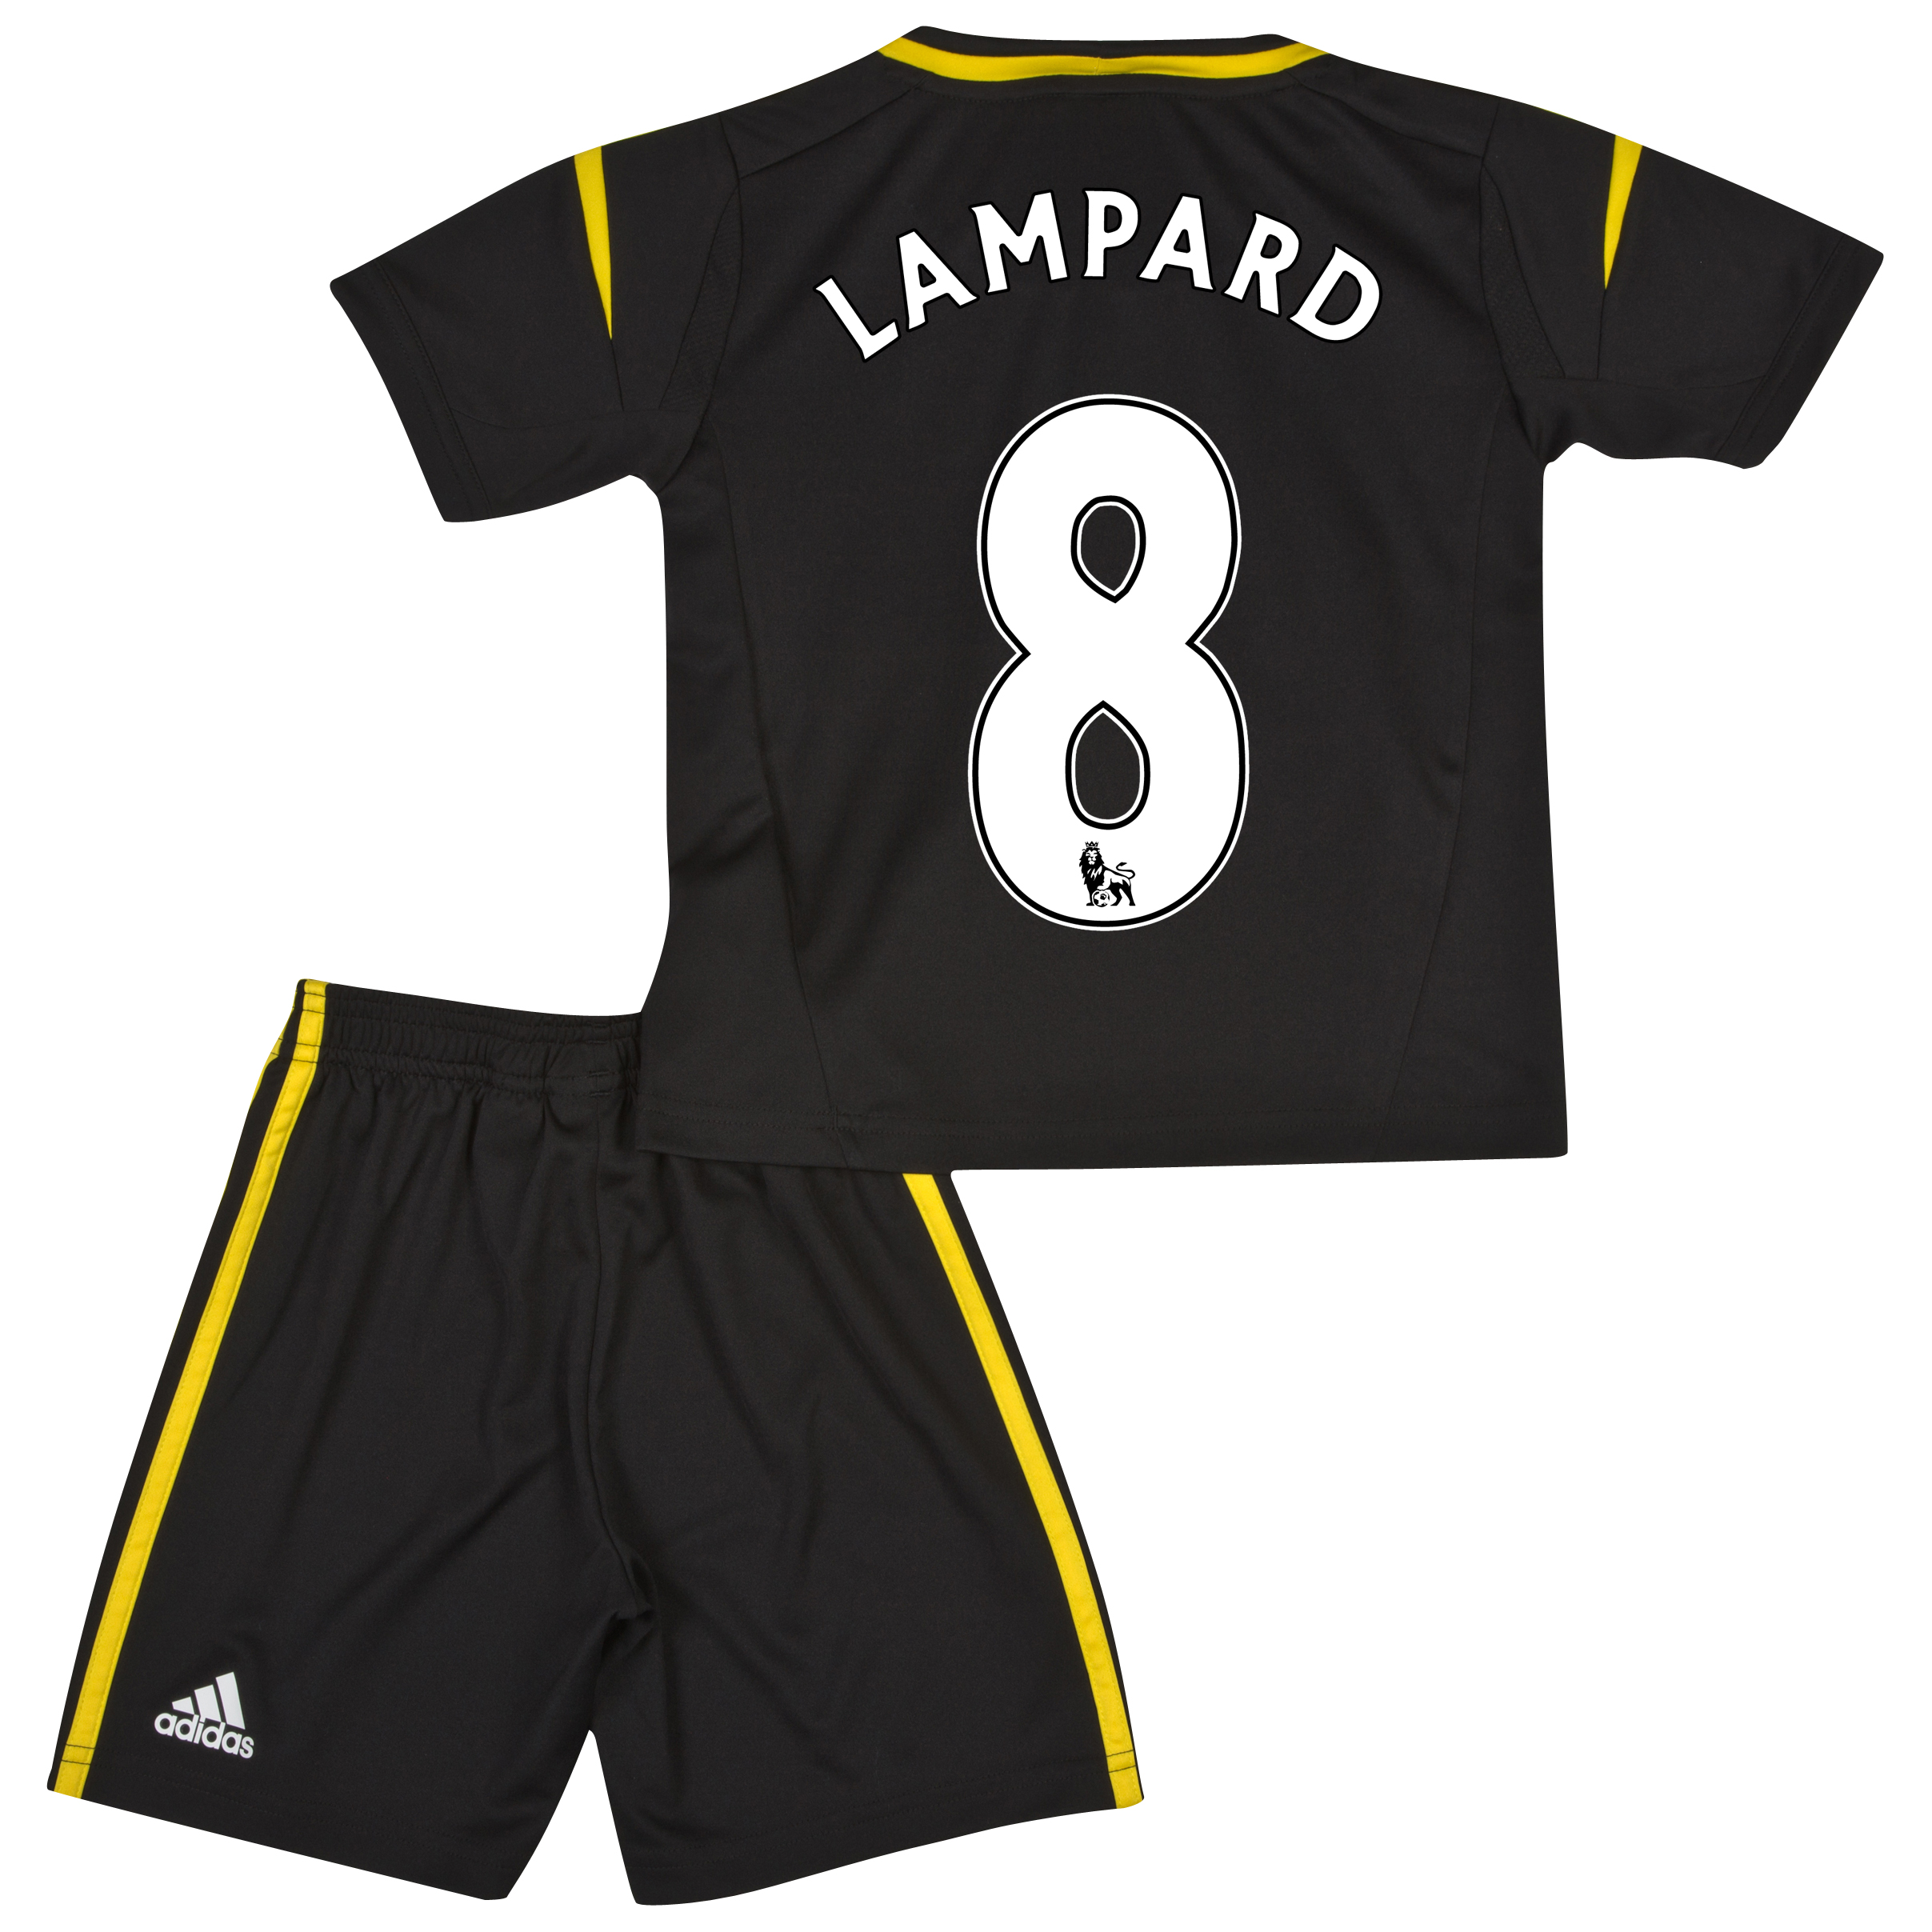 Chelsea Third Mini Kit 2012/13 with Lampard 8 printing